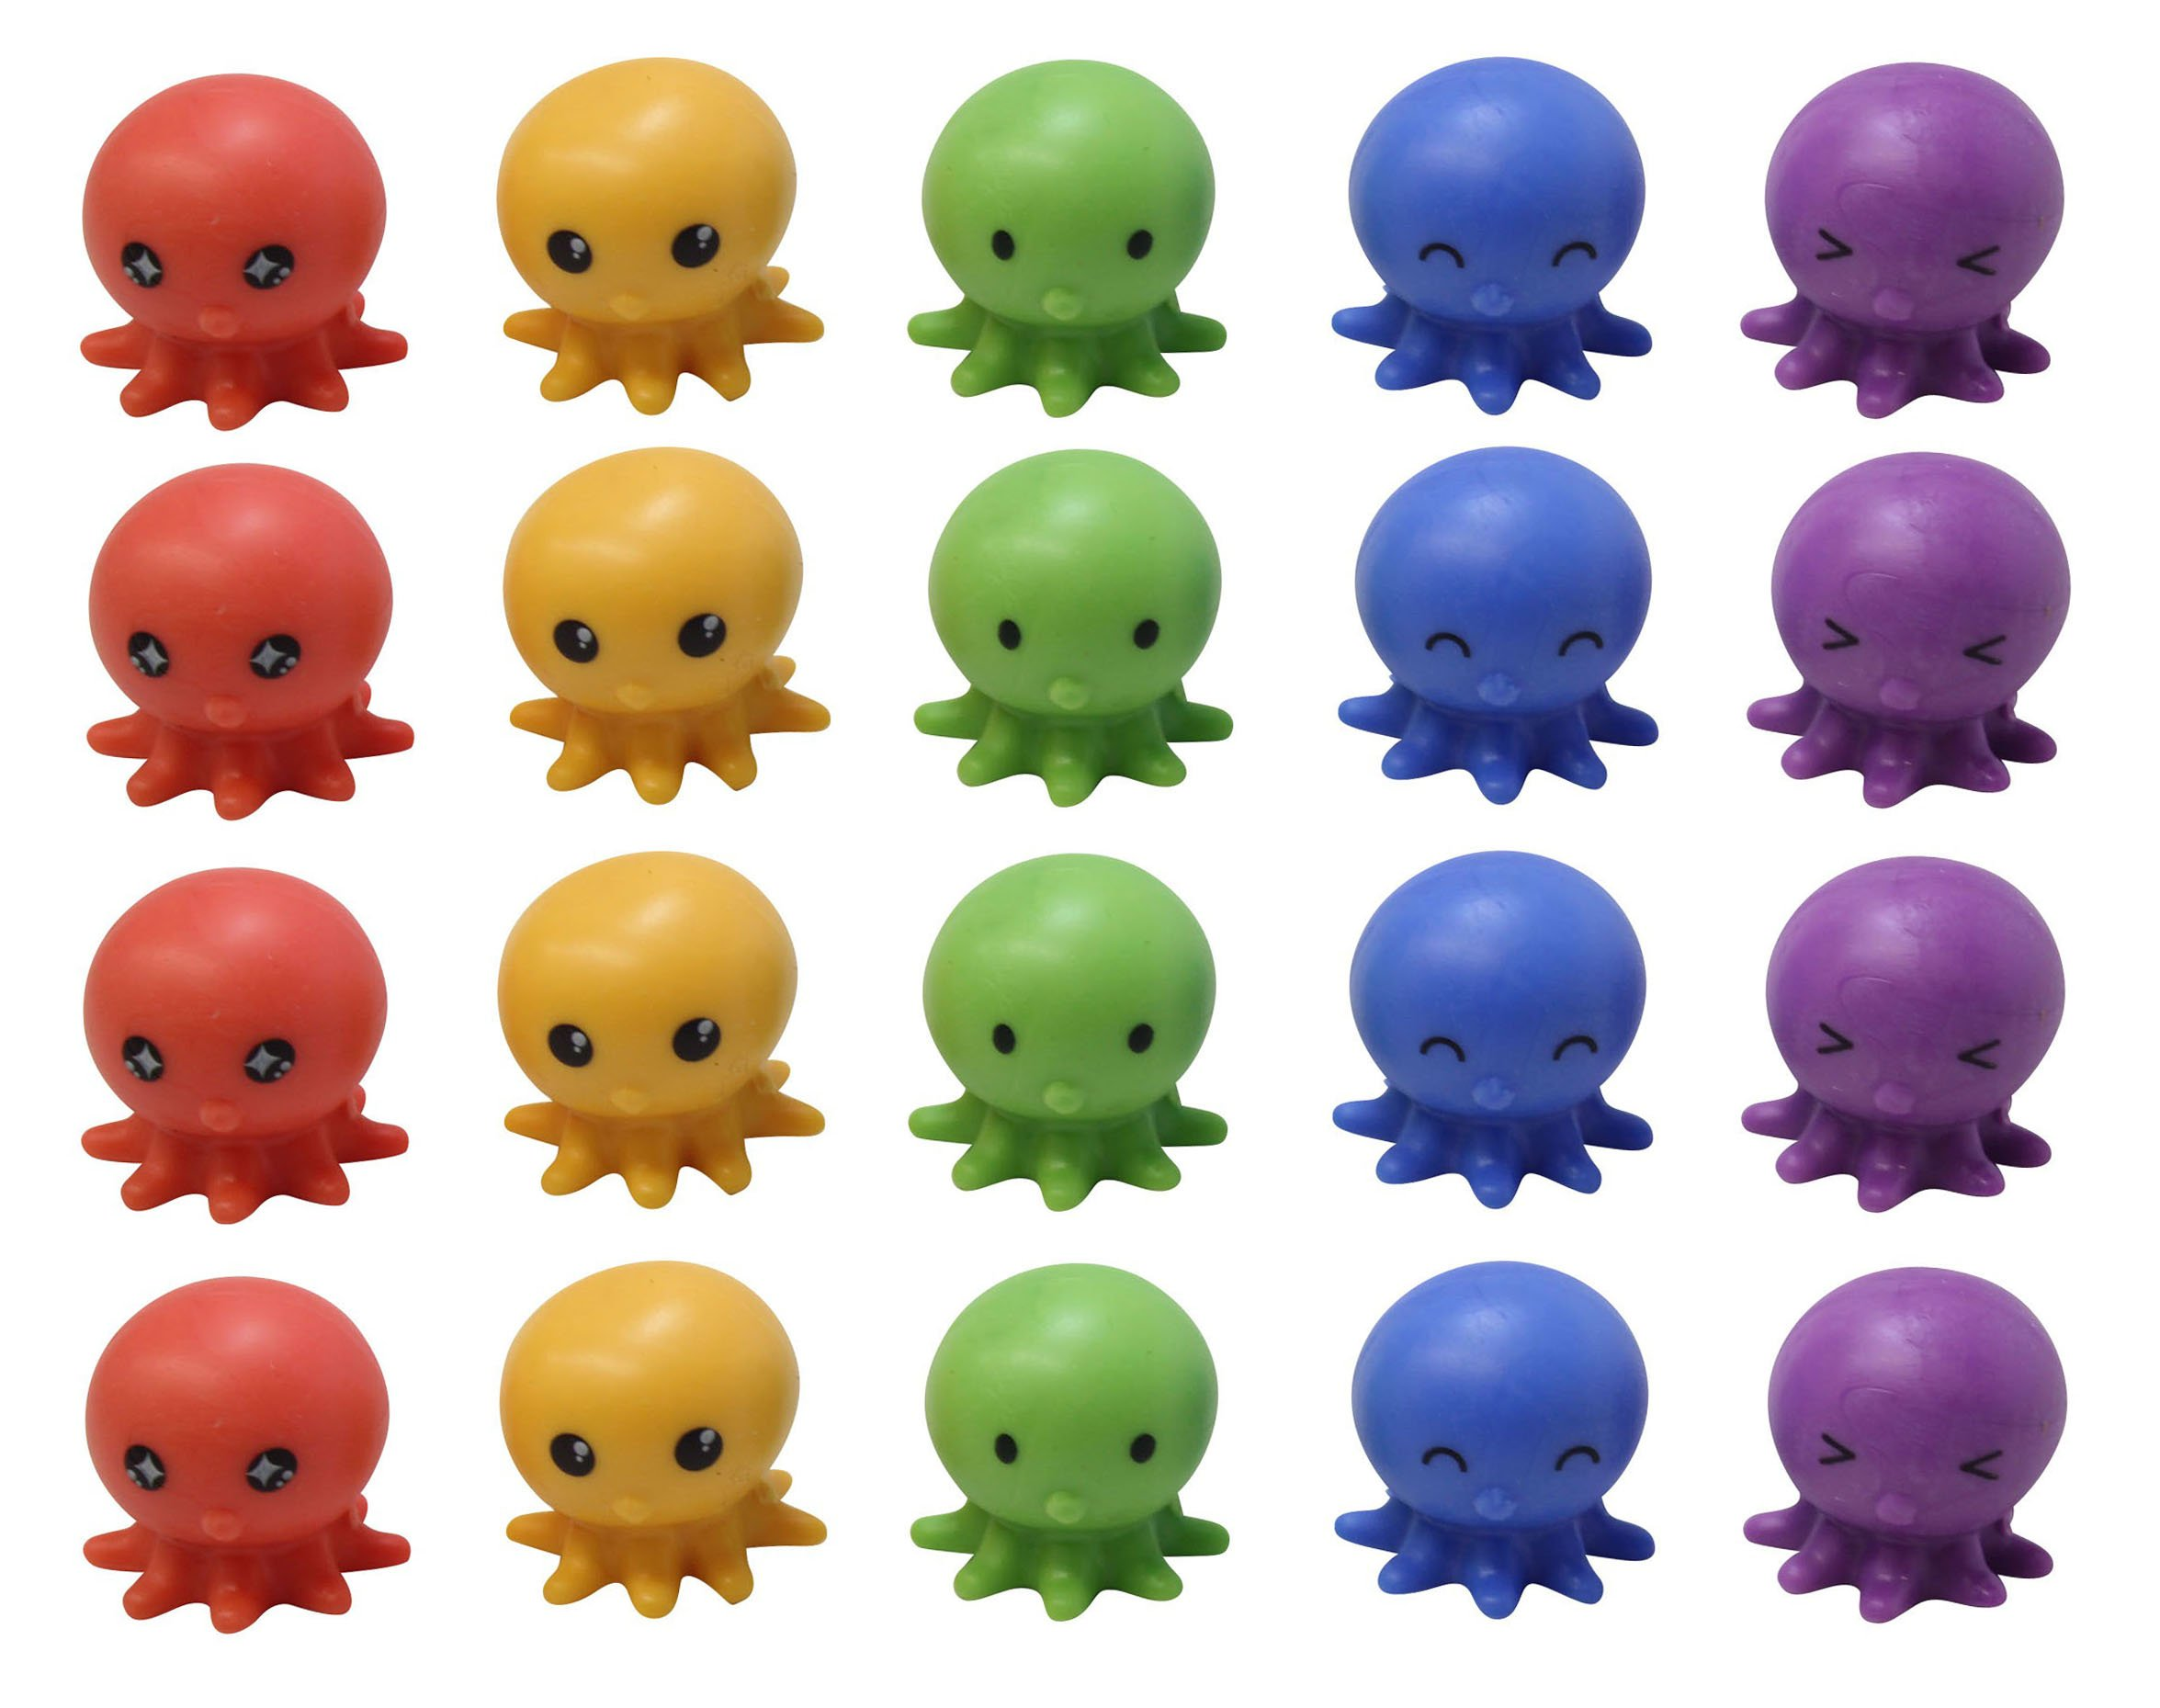 Bulk 20 Squishy Octopus Pencil Toppers - Office Teacher Supply Favors